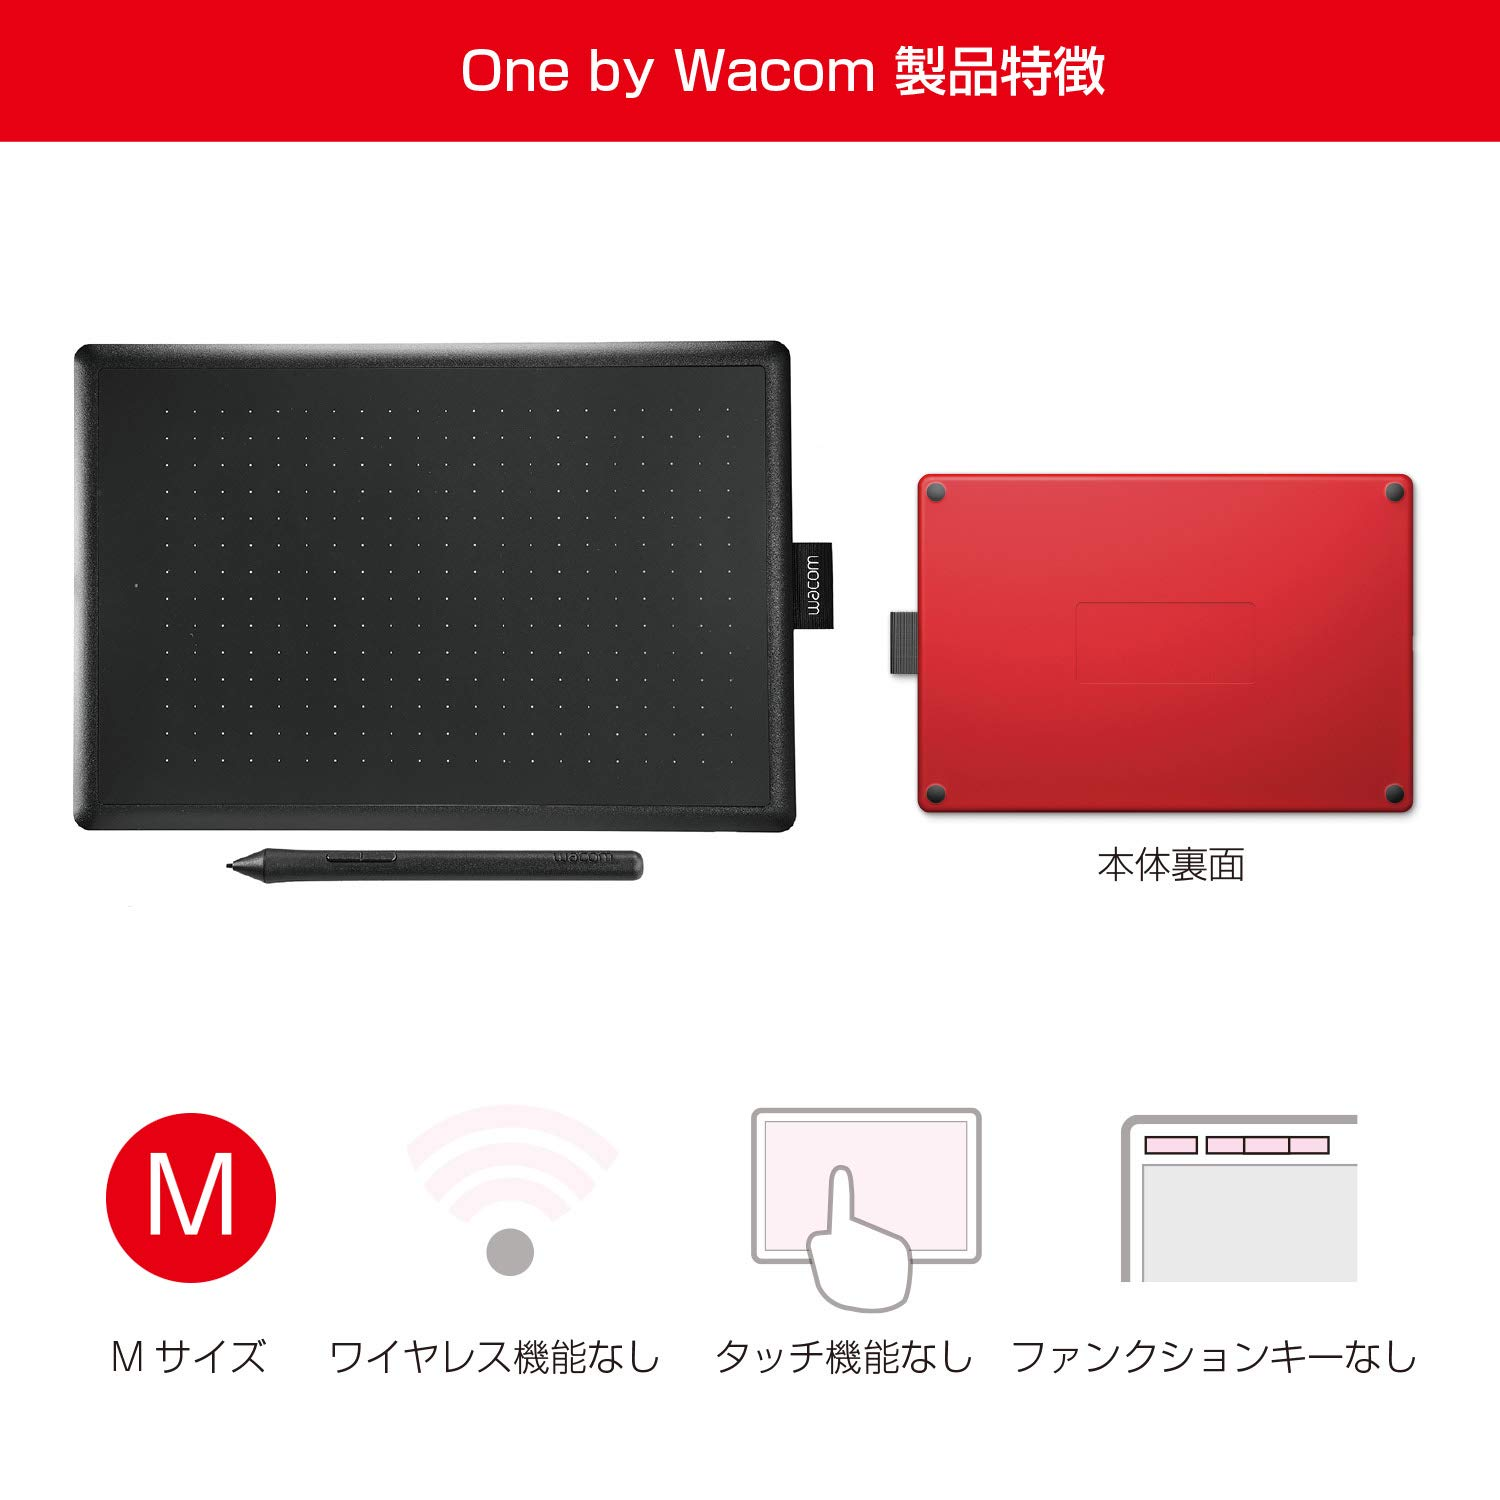 Wacom One by CTL-672/K0-CX Medium 8 5-inch x 5 3-inch Graphic Tablet  (Red/Black)